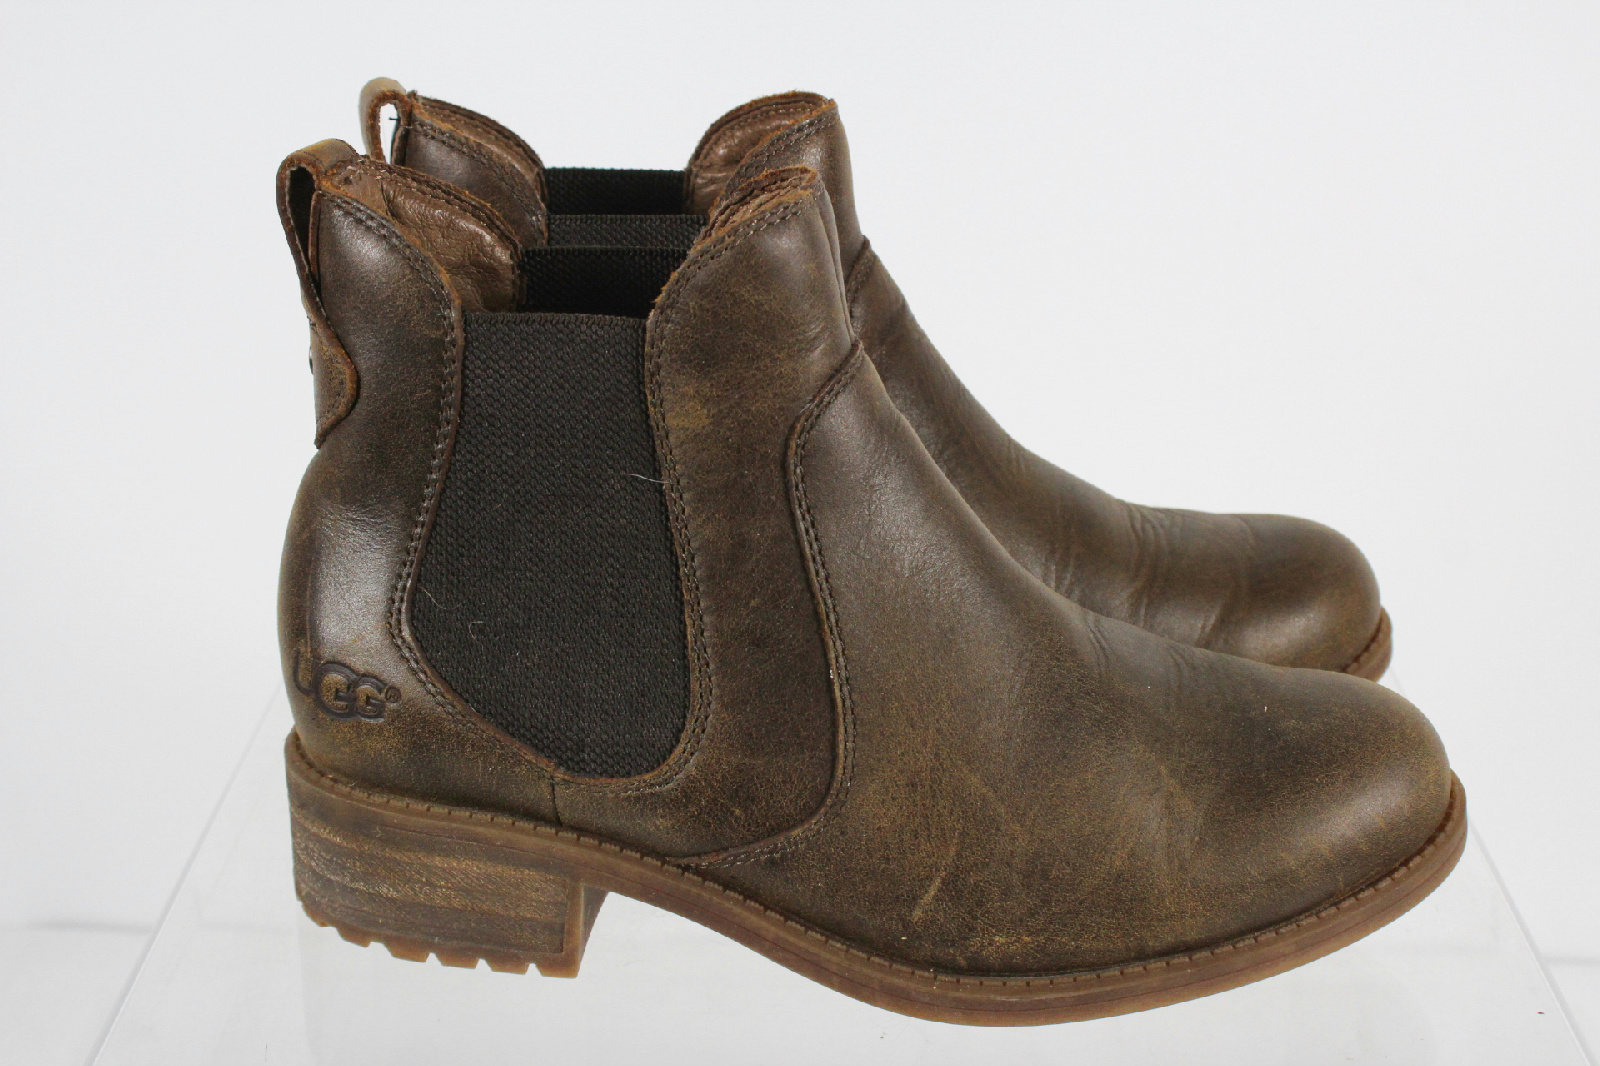 ugg brown chelsea style boots size 6 5 ebay